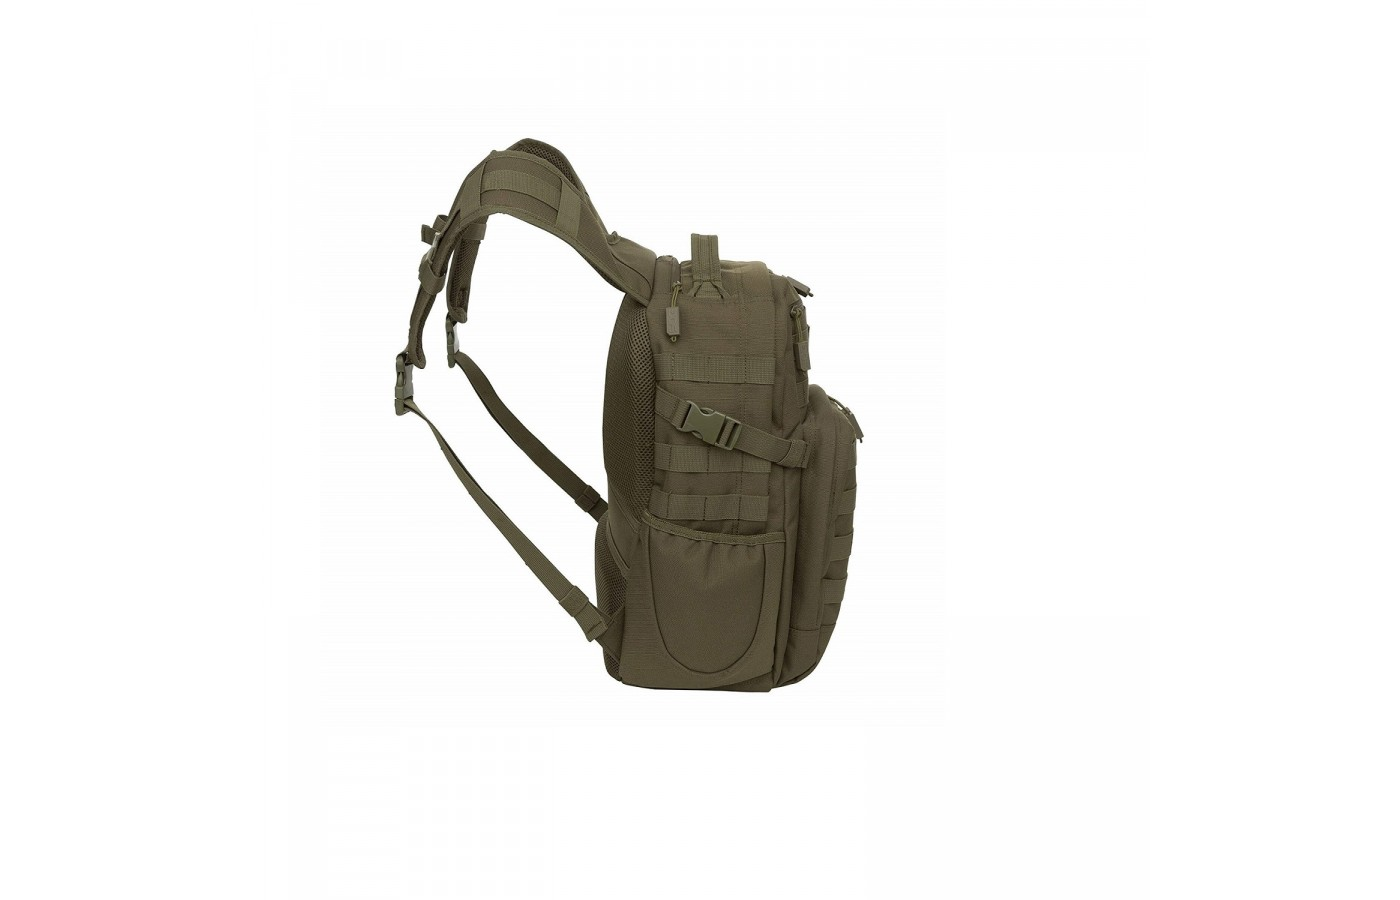 The Sog Ninja Daypack offers tons of internal capacity for all your toting needs.